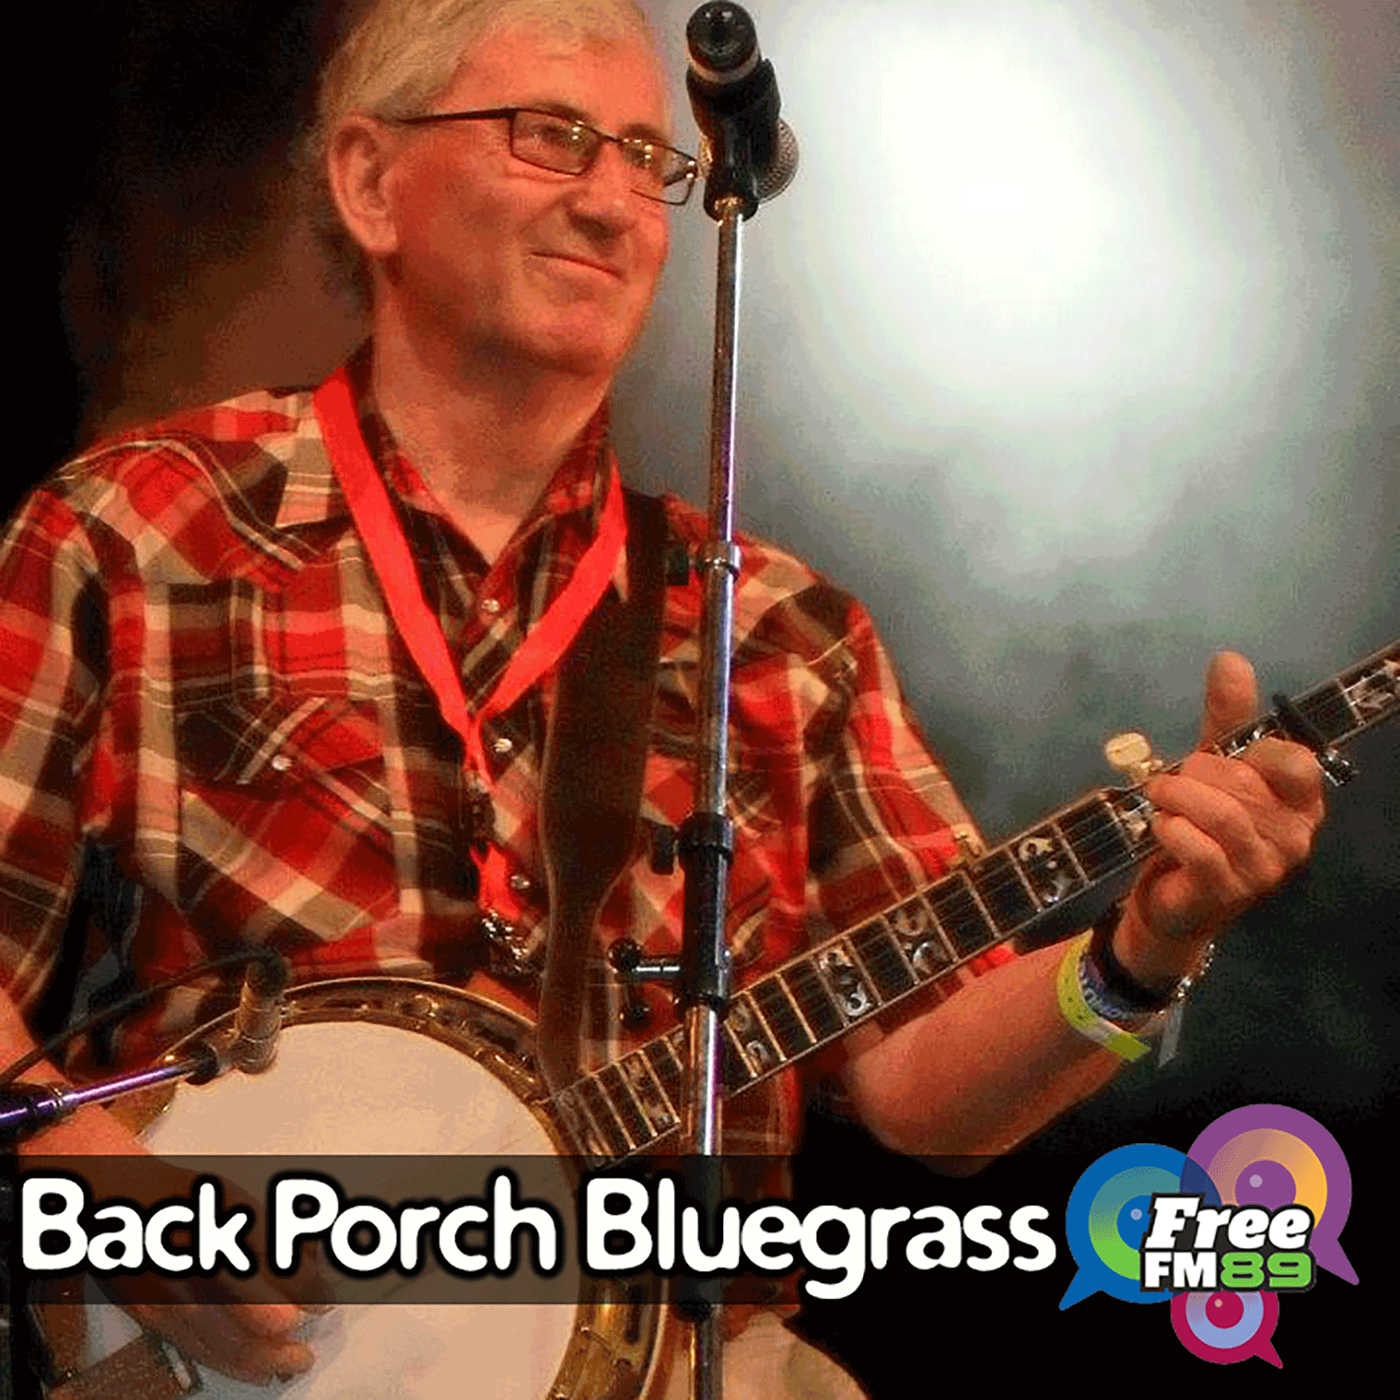 Back Porch Bluegrass - 17-09-2019